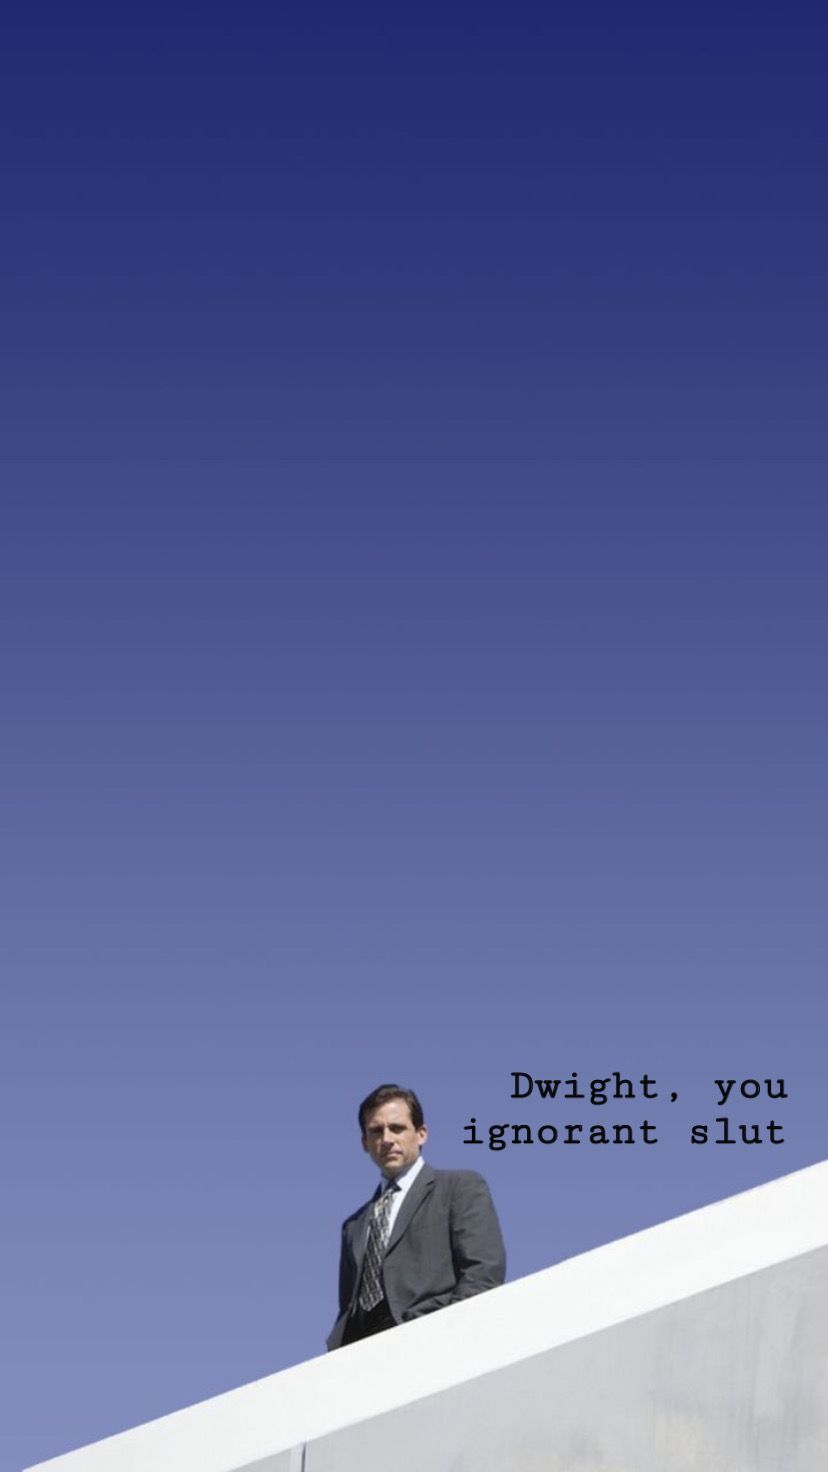 The Office Wallpaper Funny : office, wallpaper, funny, Office, Wallpaper, Michael, Scott, Quotes,, Wallpaper,